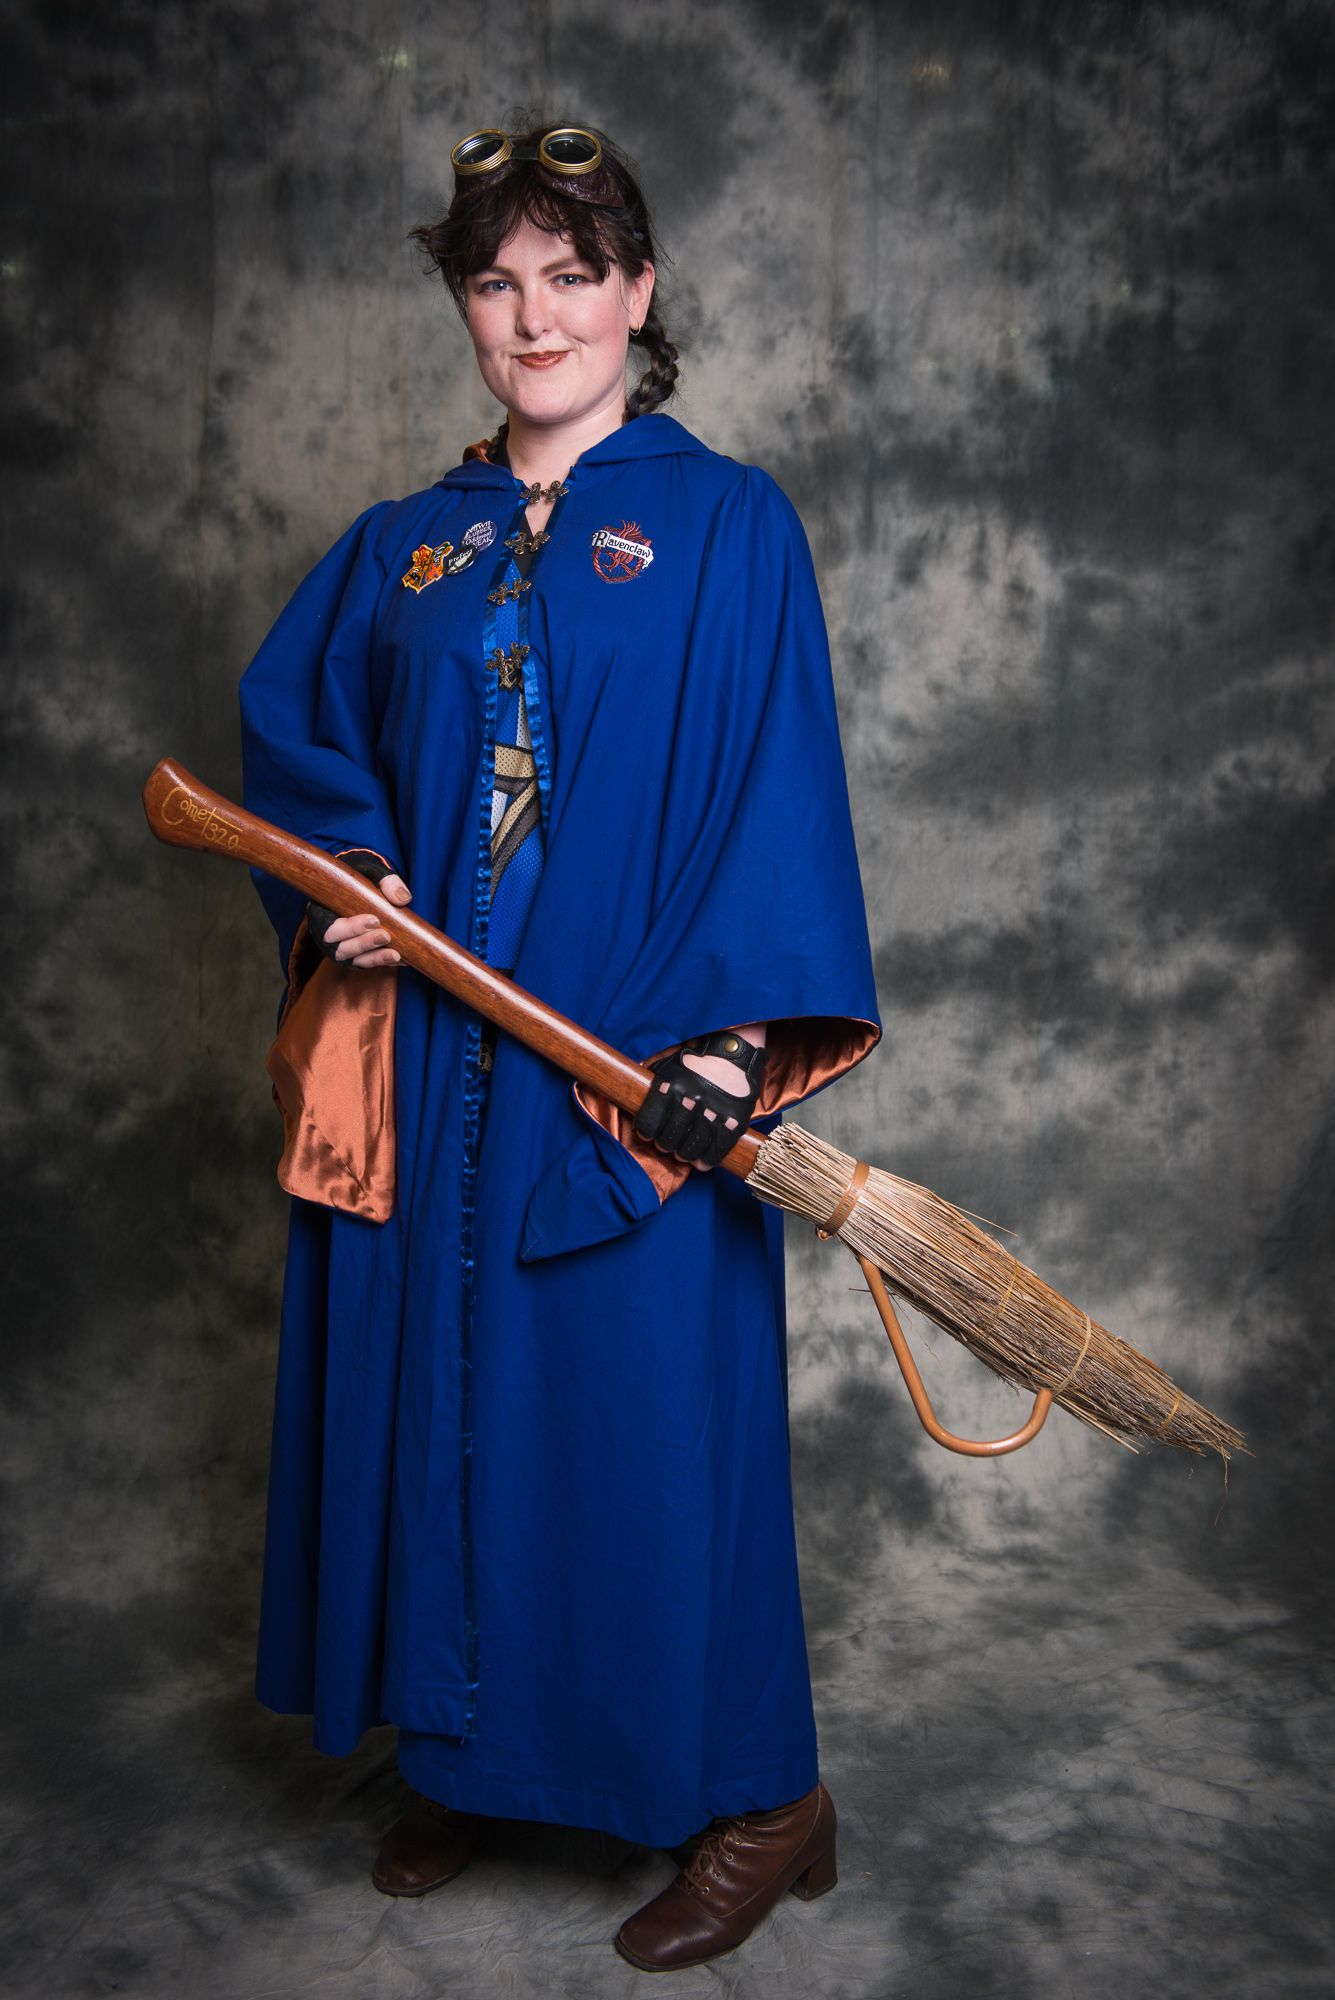 Completed Ravenclaw Quidditch Player, Armageddon 2014 ...